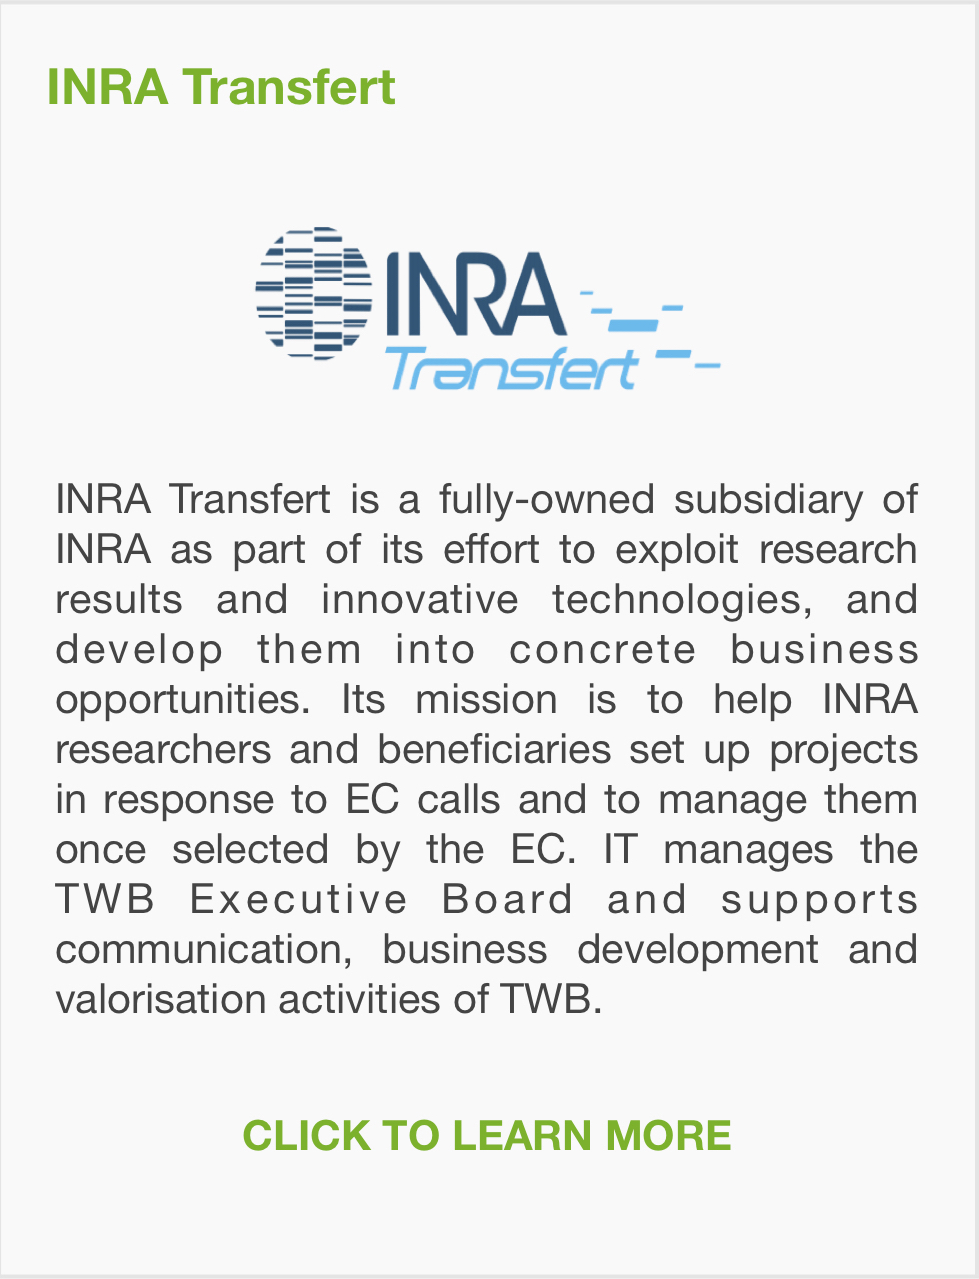 INRA tr